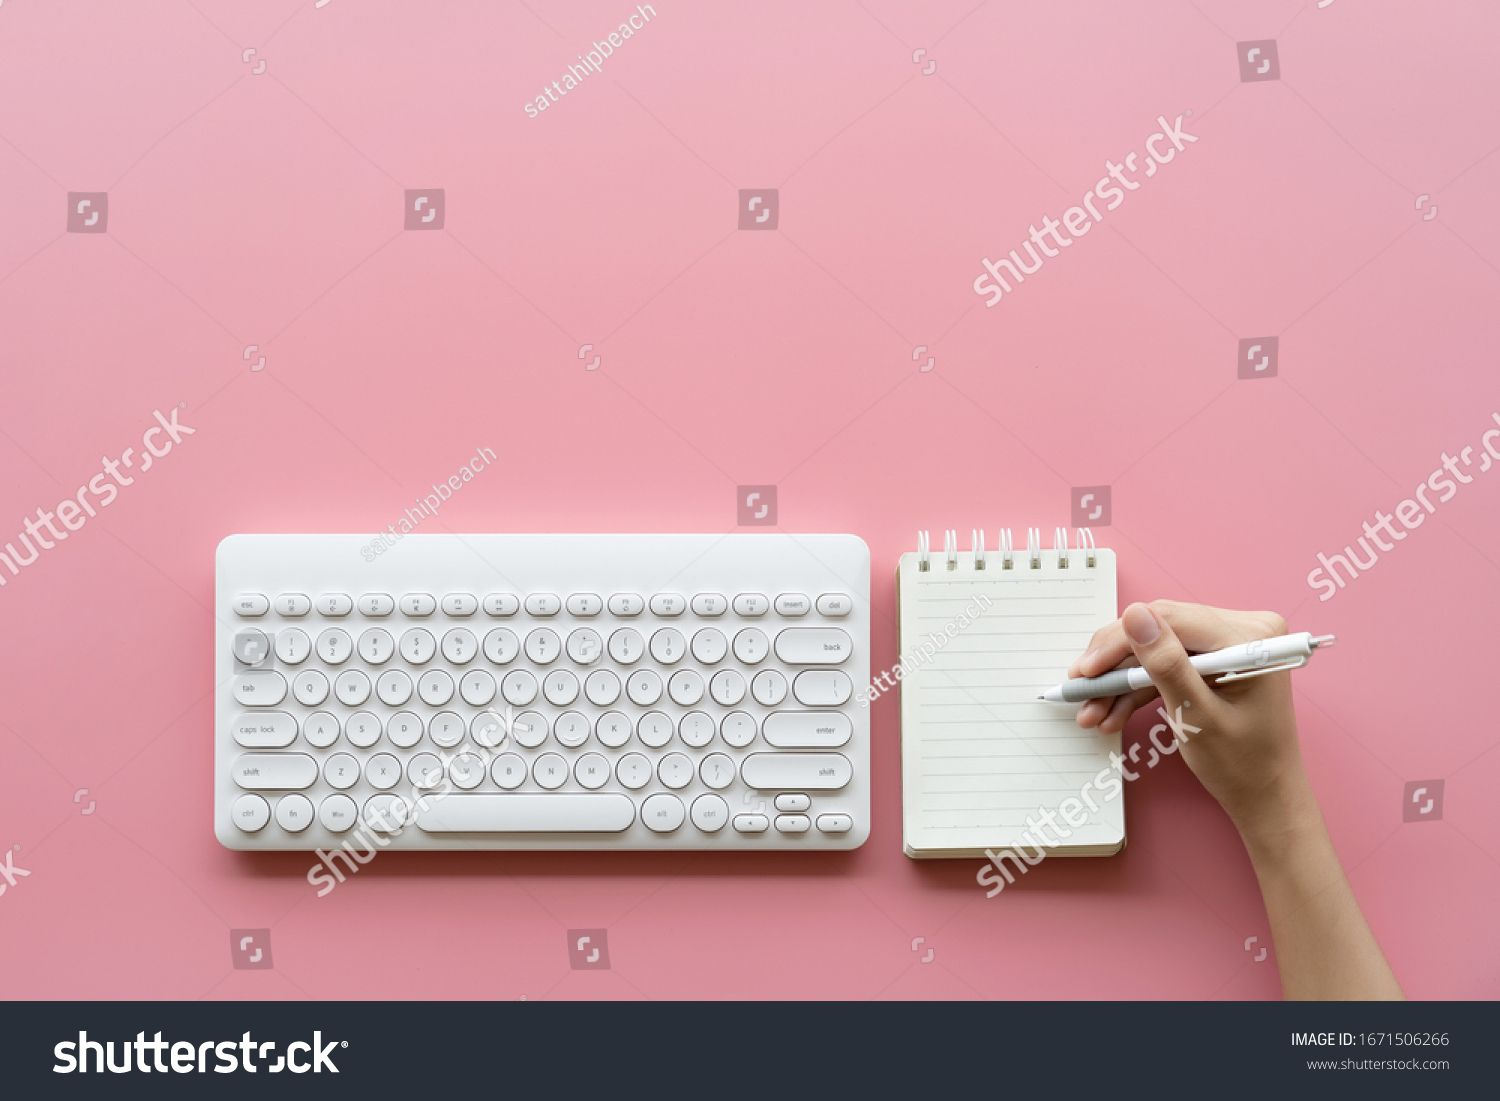 Keyboard Computer And Hand Draw Notepad Object On Pink Color Pastel Tone On Background Short Note Writing List To D Ad How To Draw Hands Note Pad Objects